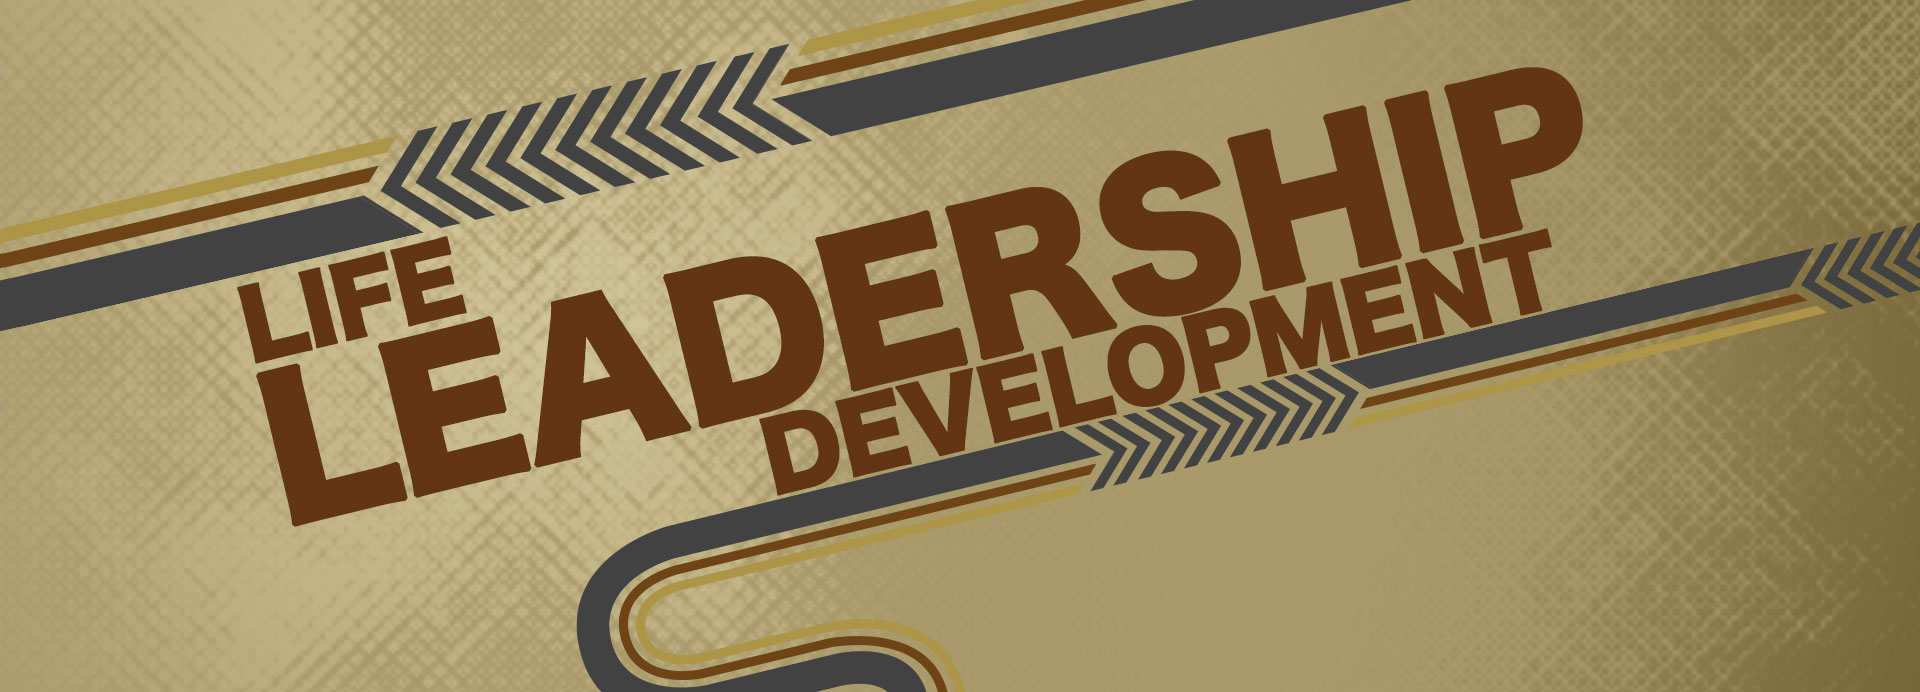 Life Leadership Development